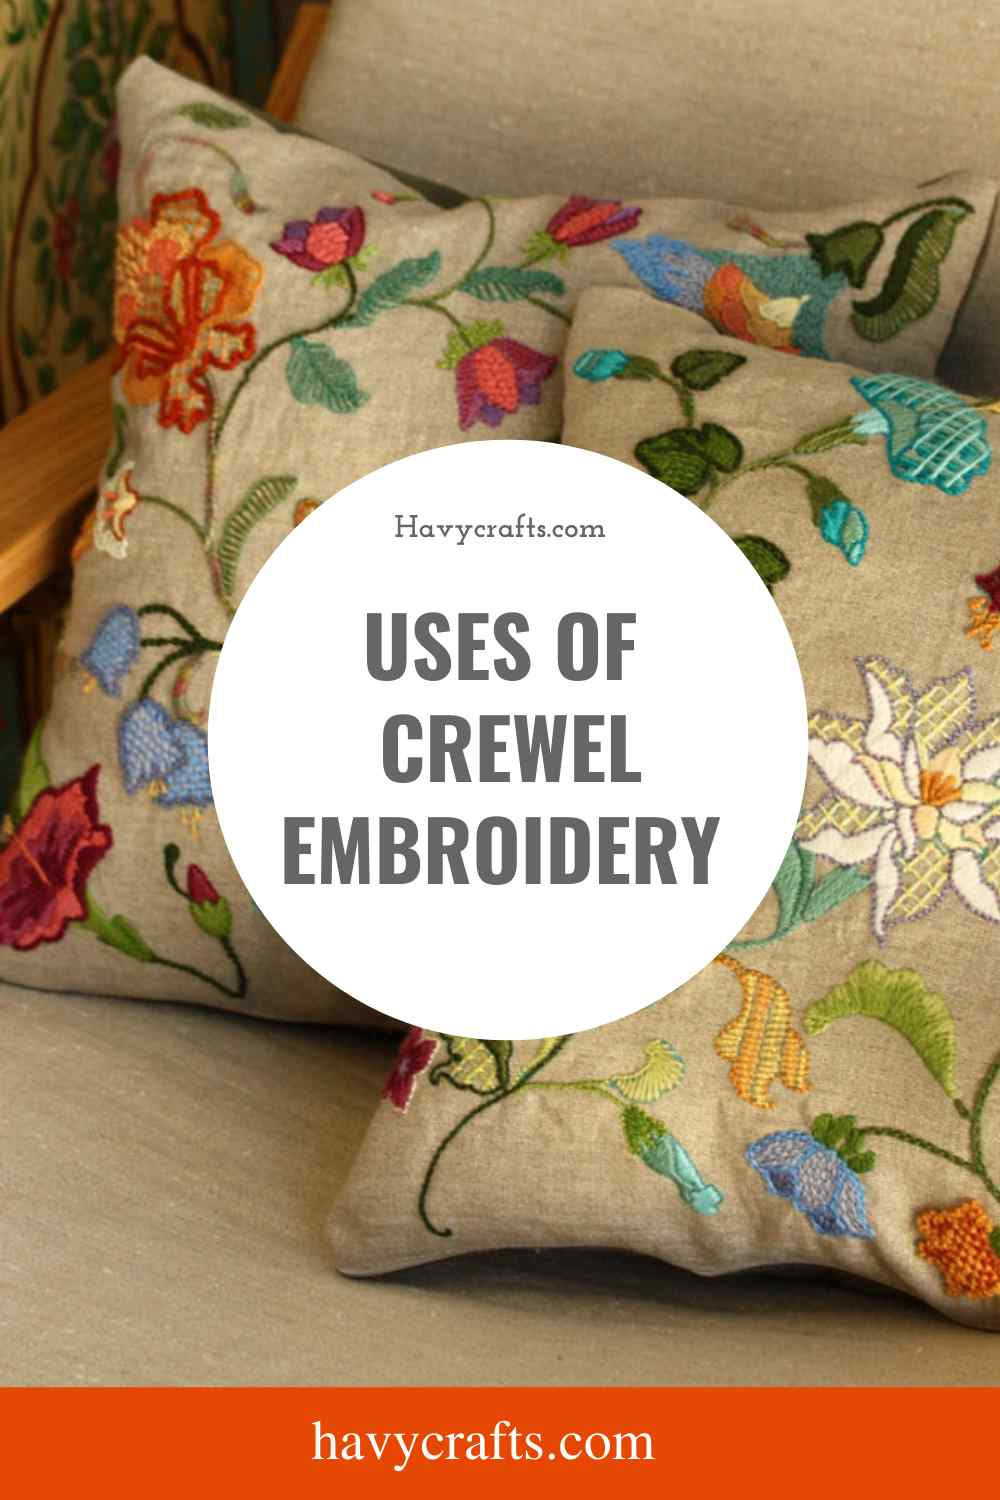 Uses of Crewel Embroidery